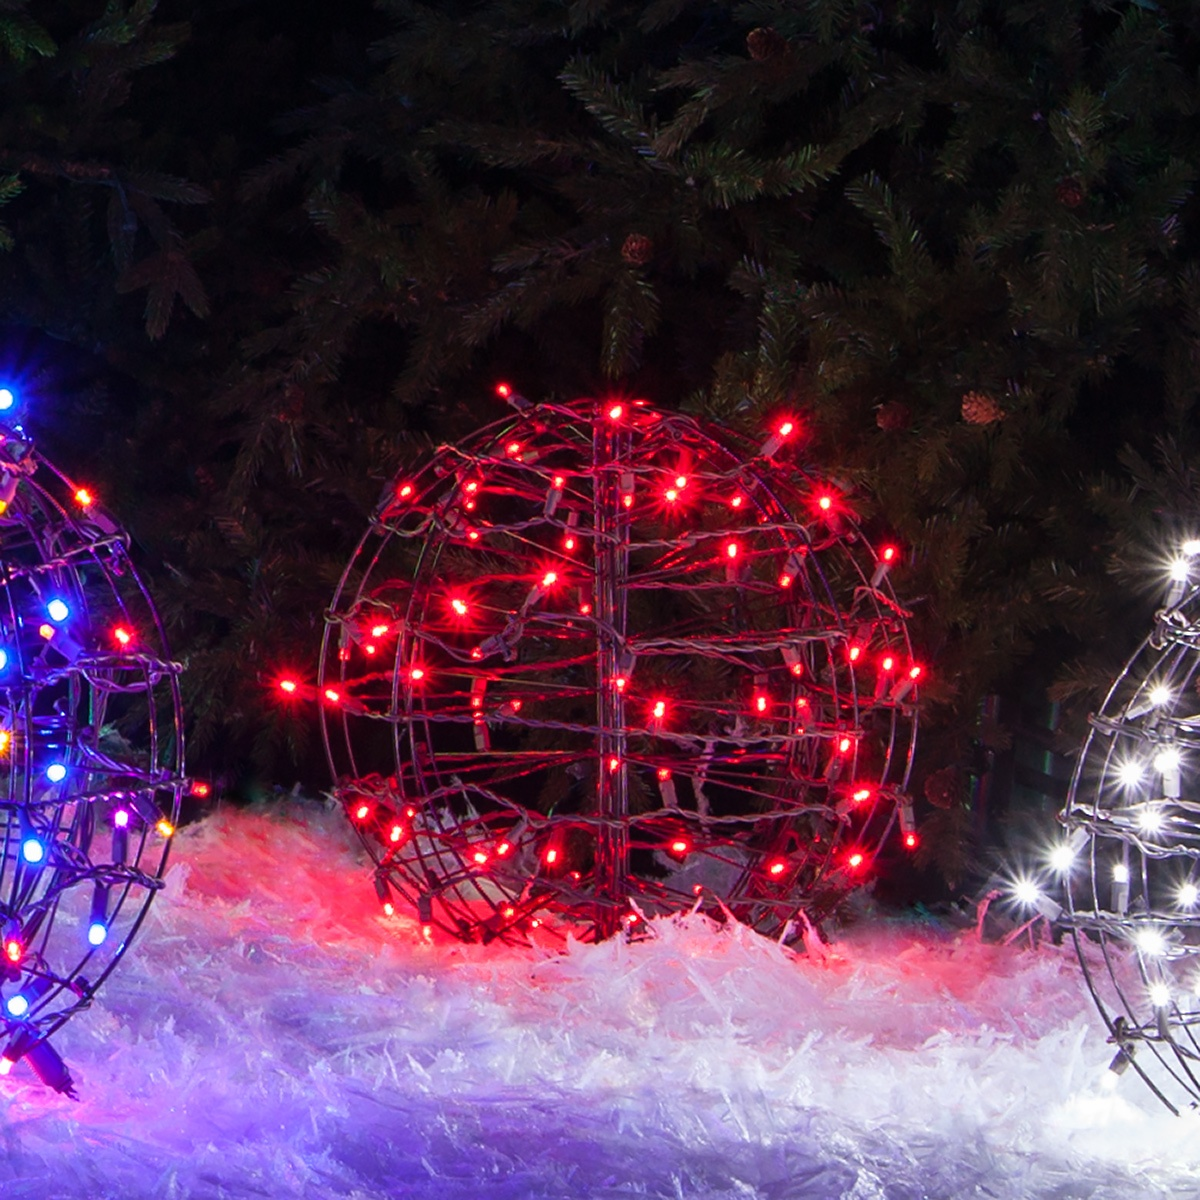 outdoor christmas light balls large tree dialysave - Christmas Light Balls For Trees